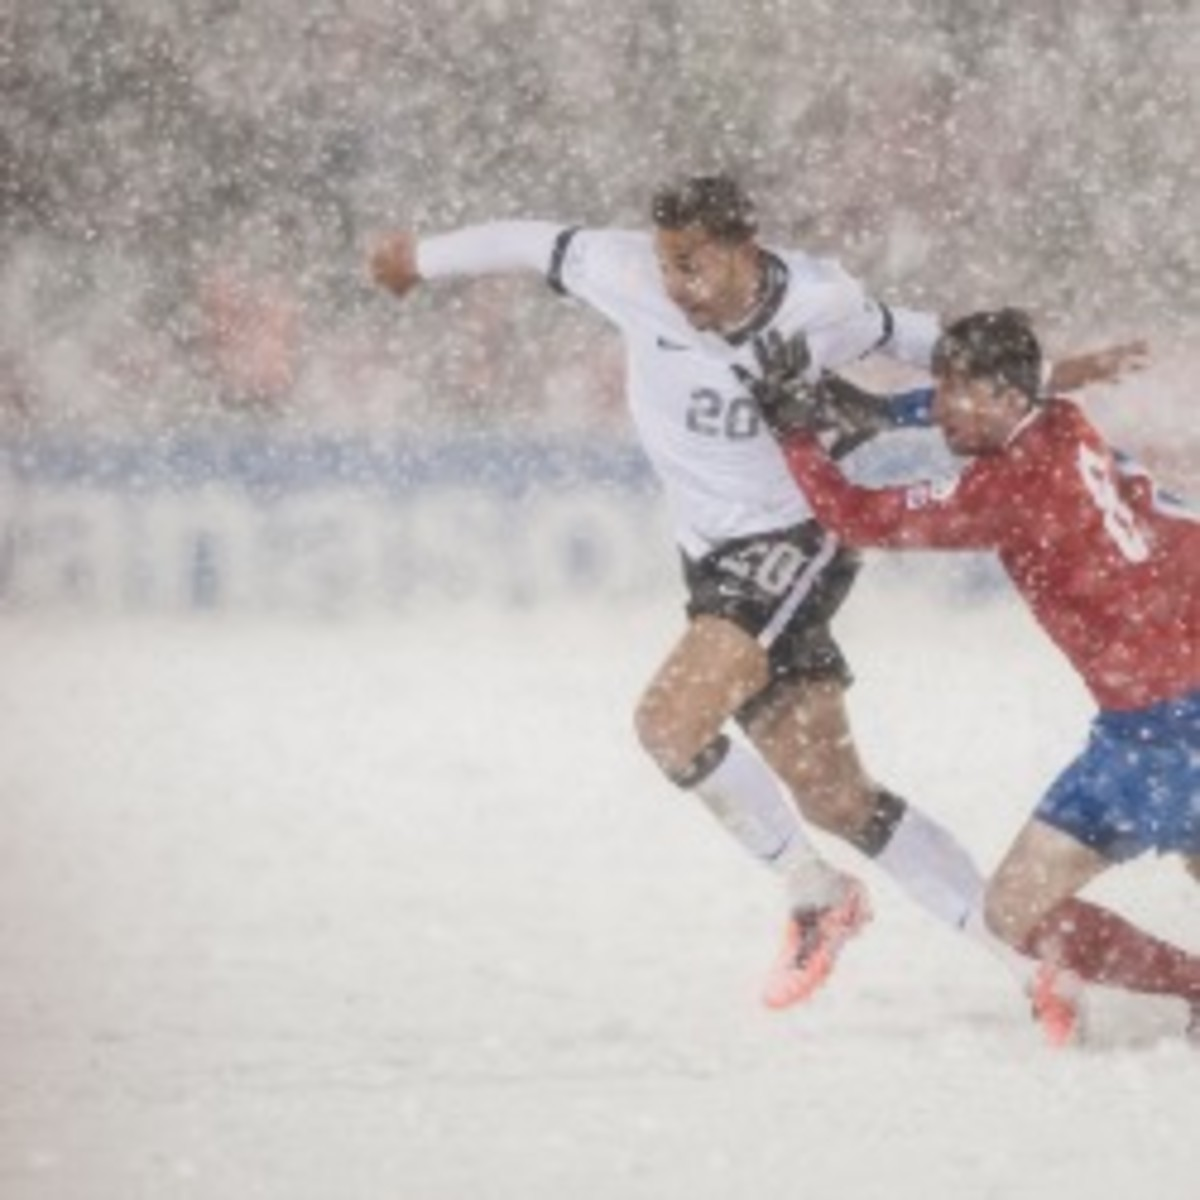 Costa Rica will reportedly protest a 1-0 loss to the U.S. because of a snowstorm. (Dustin Bradford/Getty Images)